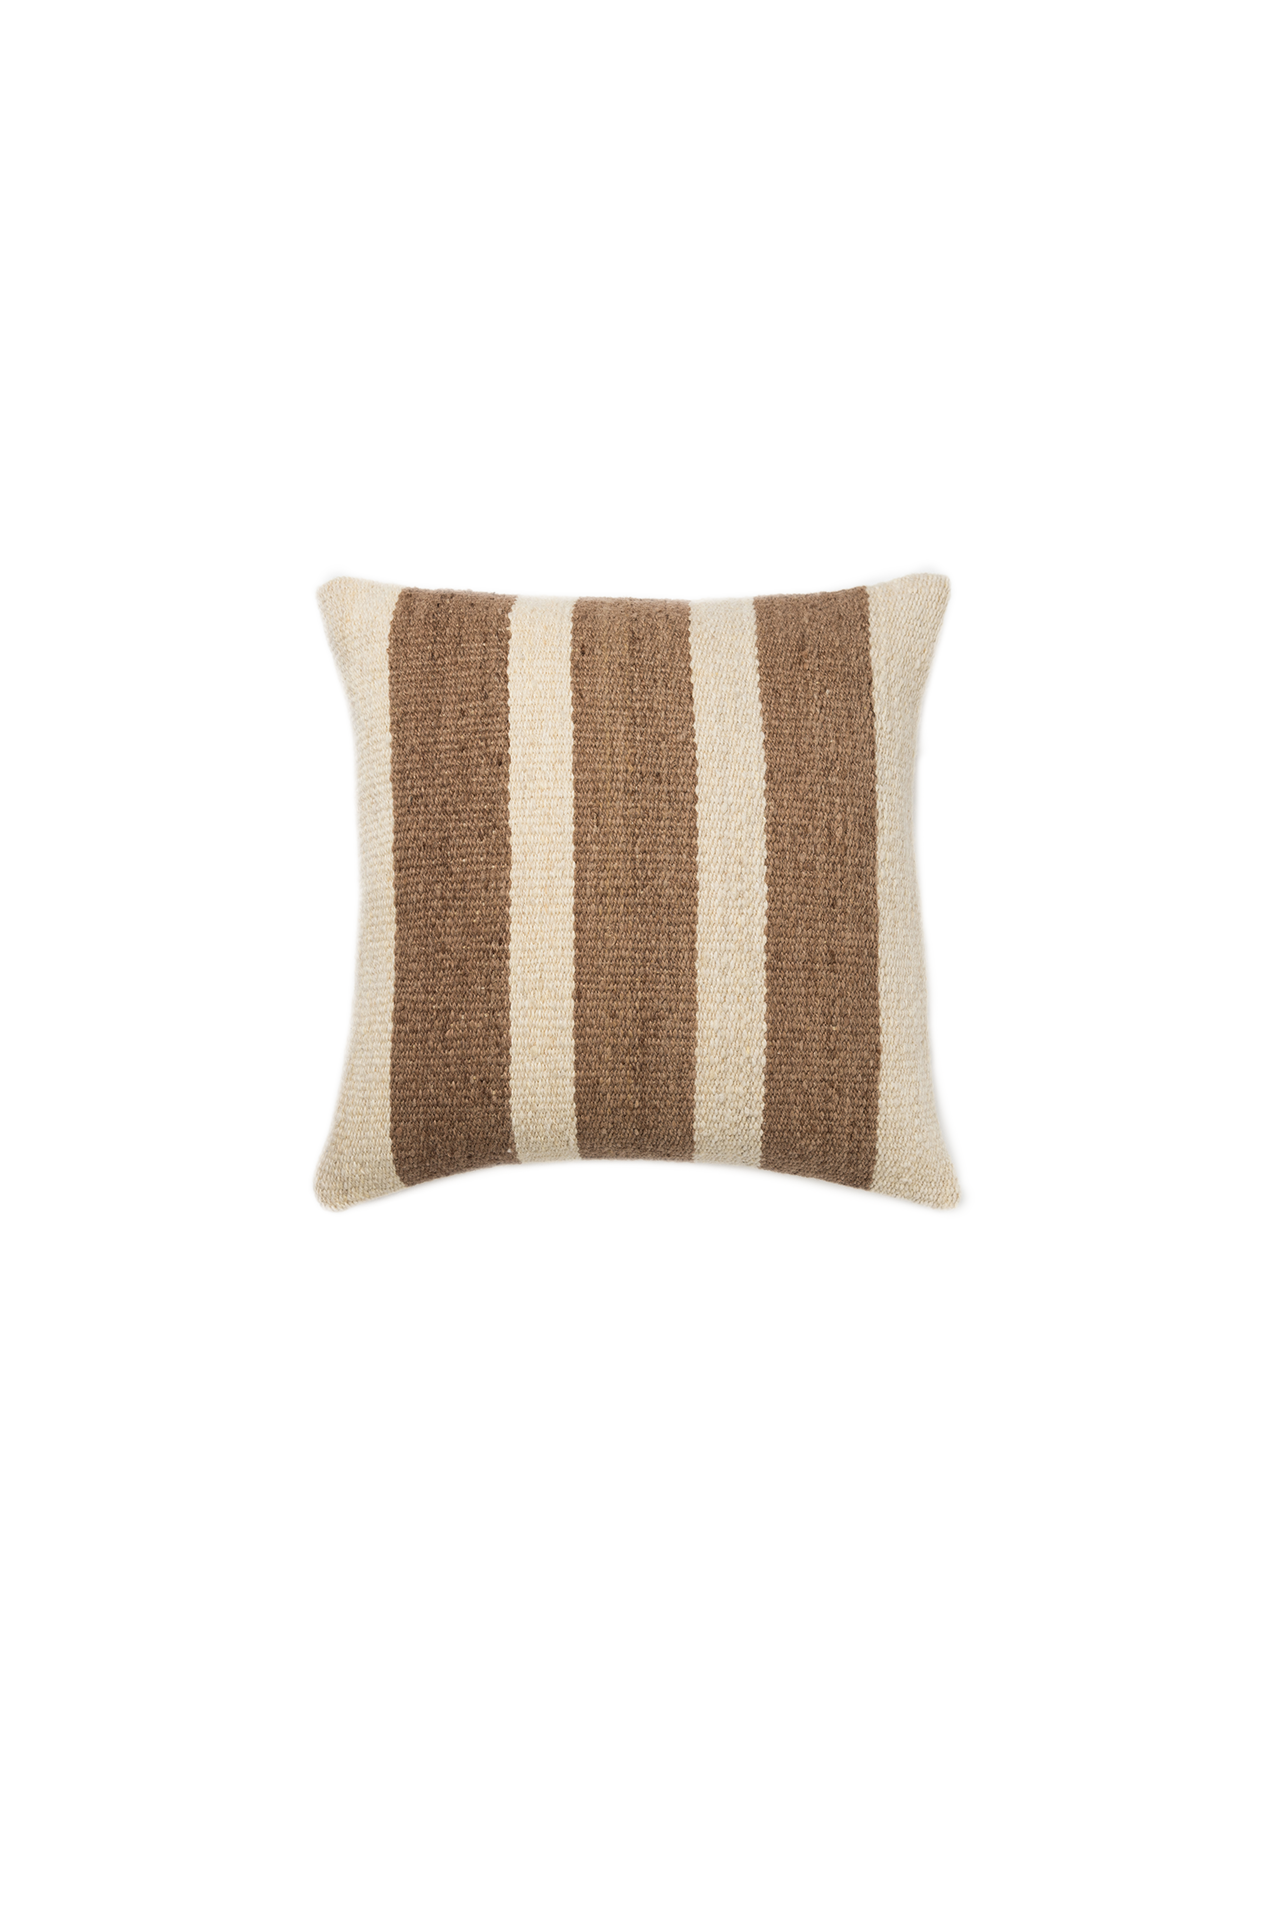 Joya Handwoven Pillow